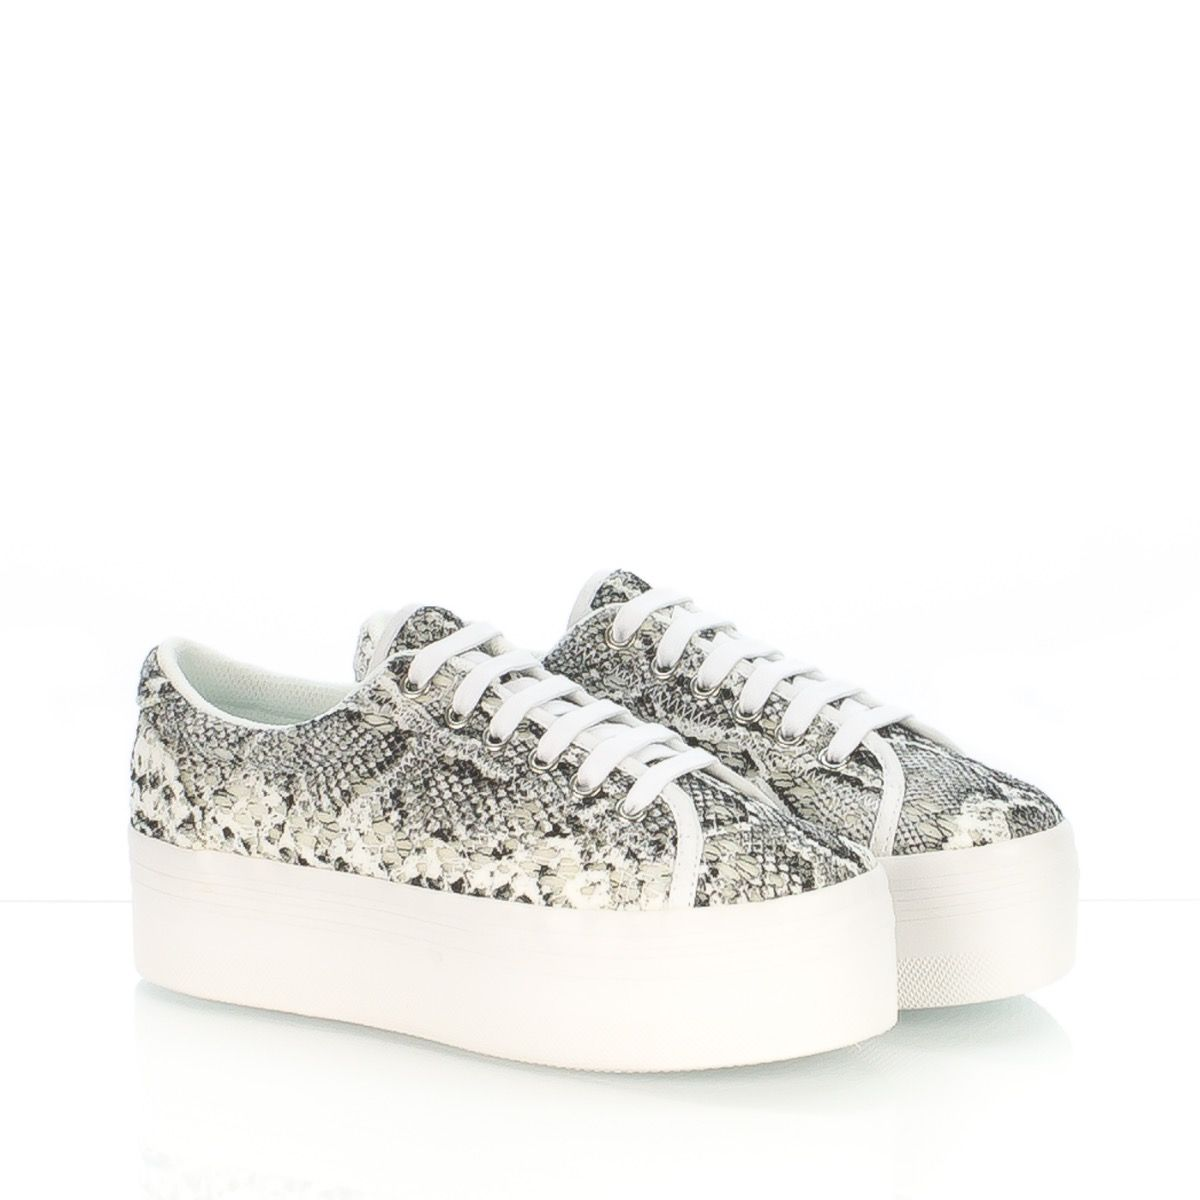 c24e1bf617 JC PLAY JEFFREY CAMPBELL ZOMG LACE SNEAKER DONNA PIZZO BIANCO GRIGIO